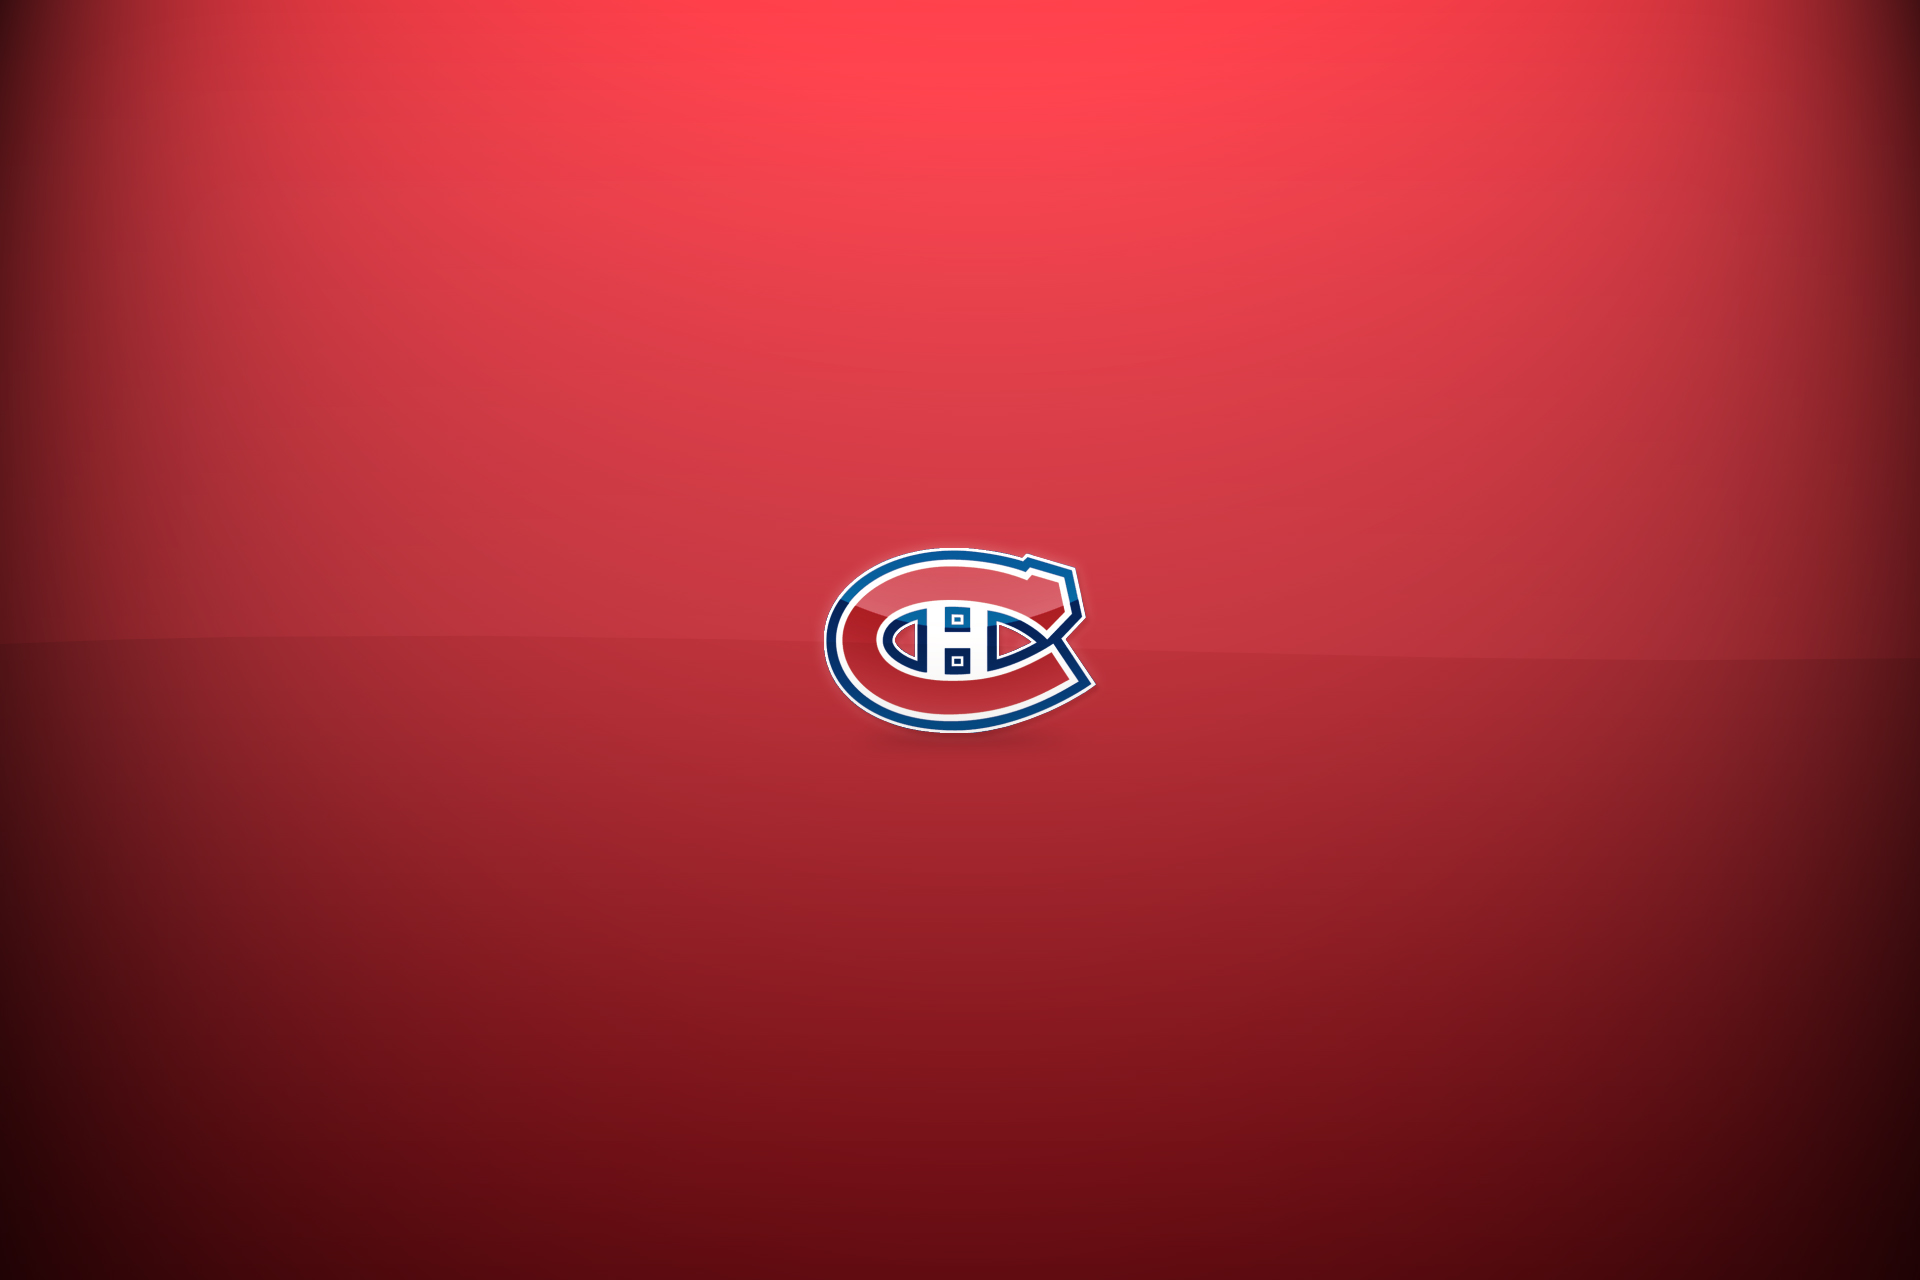 Montreal Canadiens 1920x1280